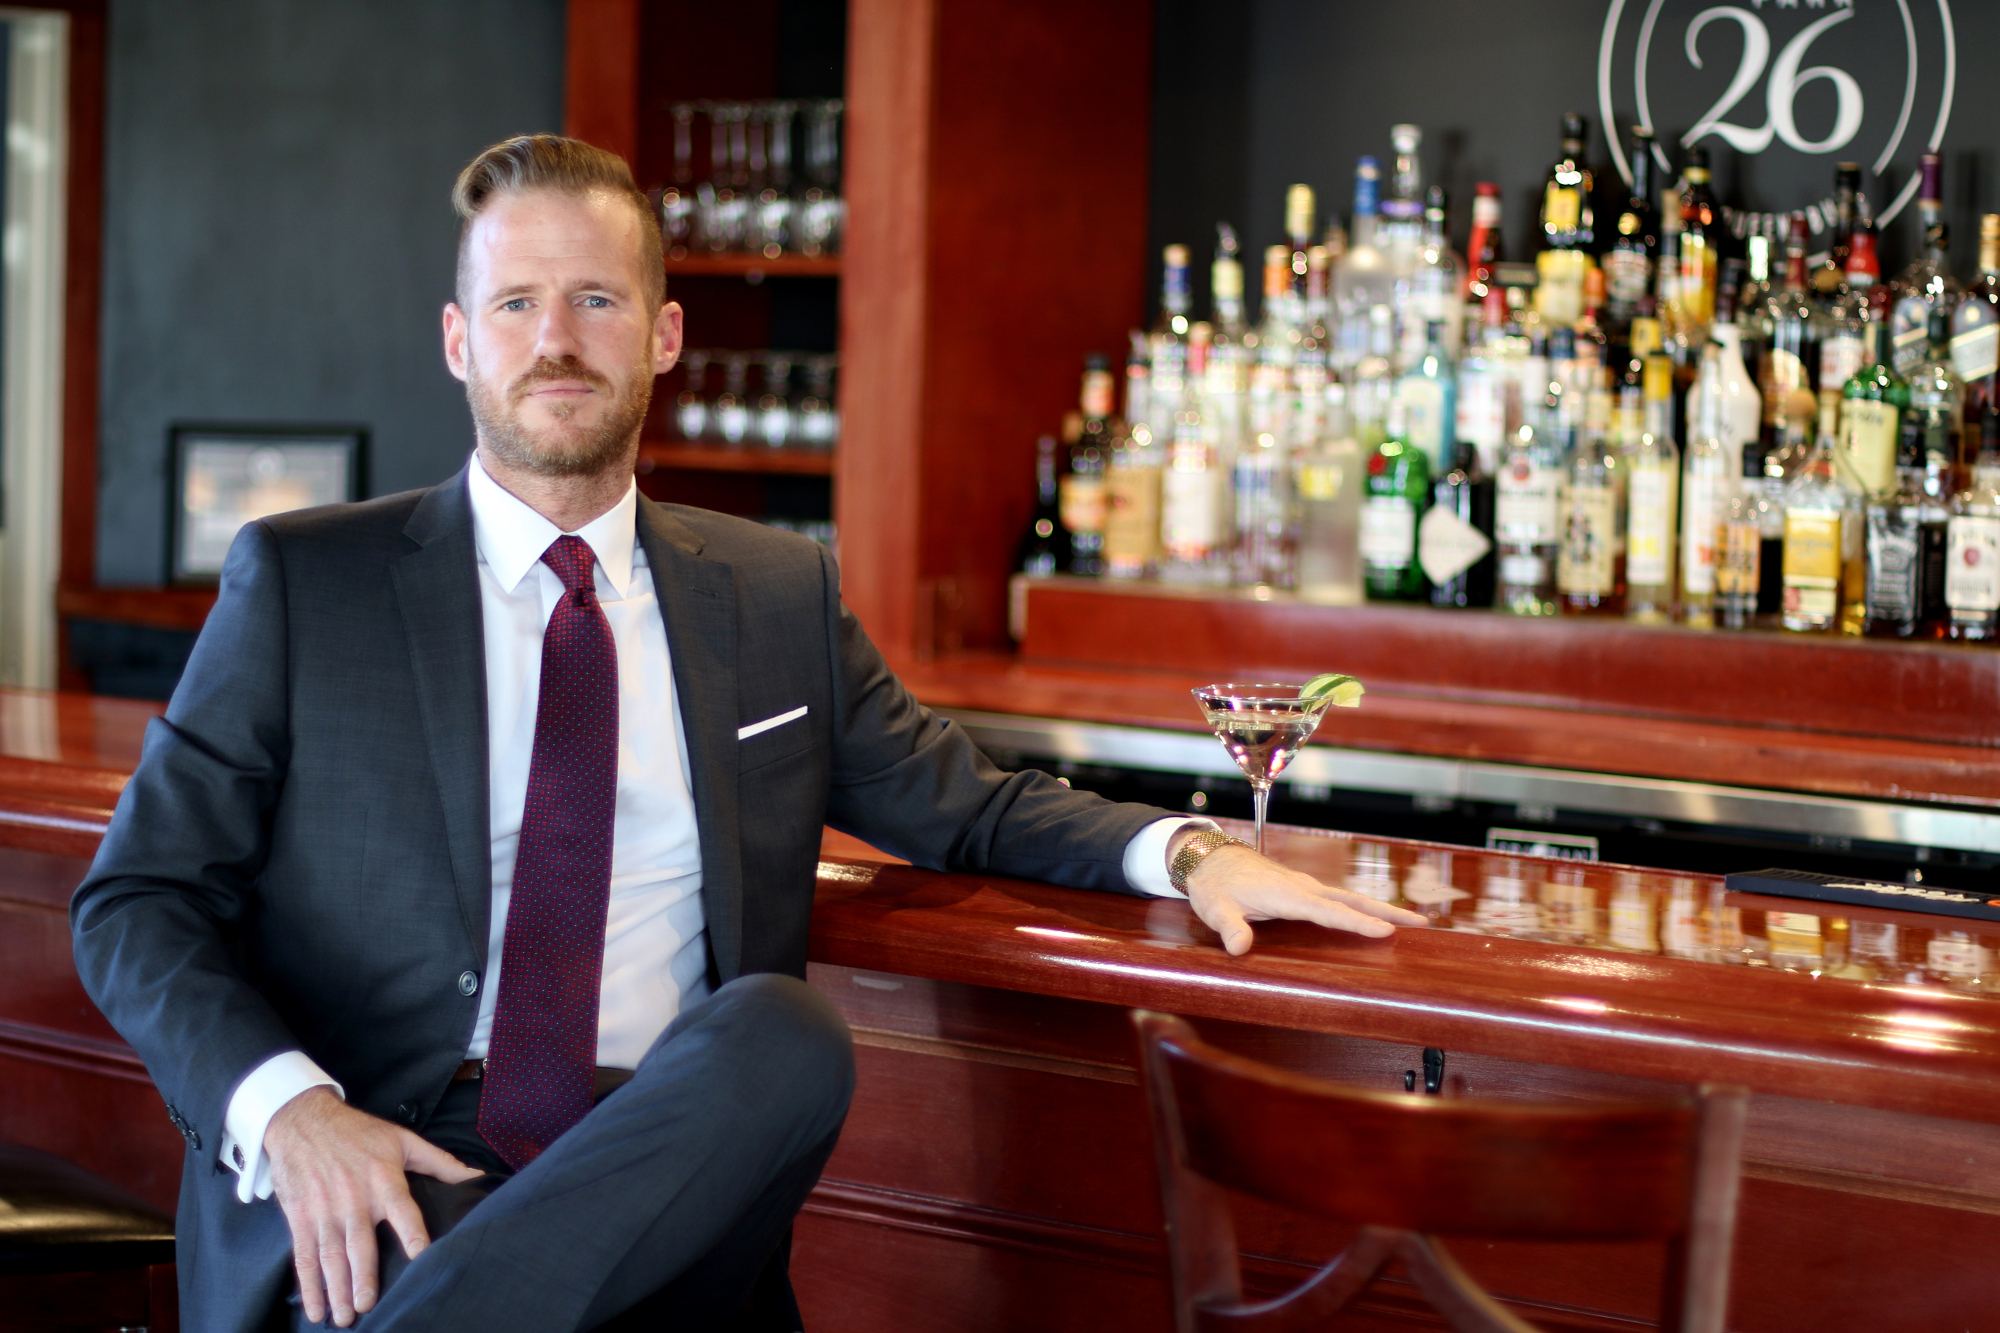 Picture of Jonathan Reid owner, Jeffrey Ives, sitting at a bar in a suit